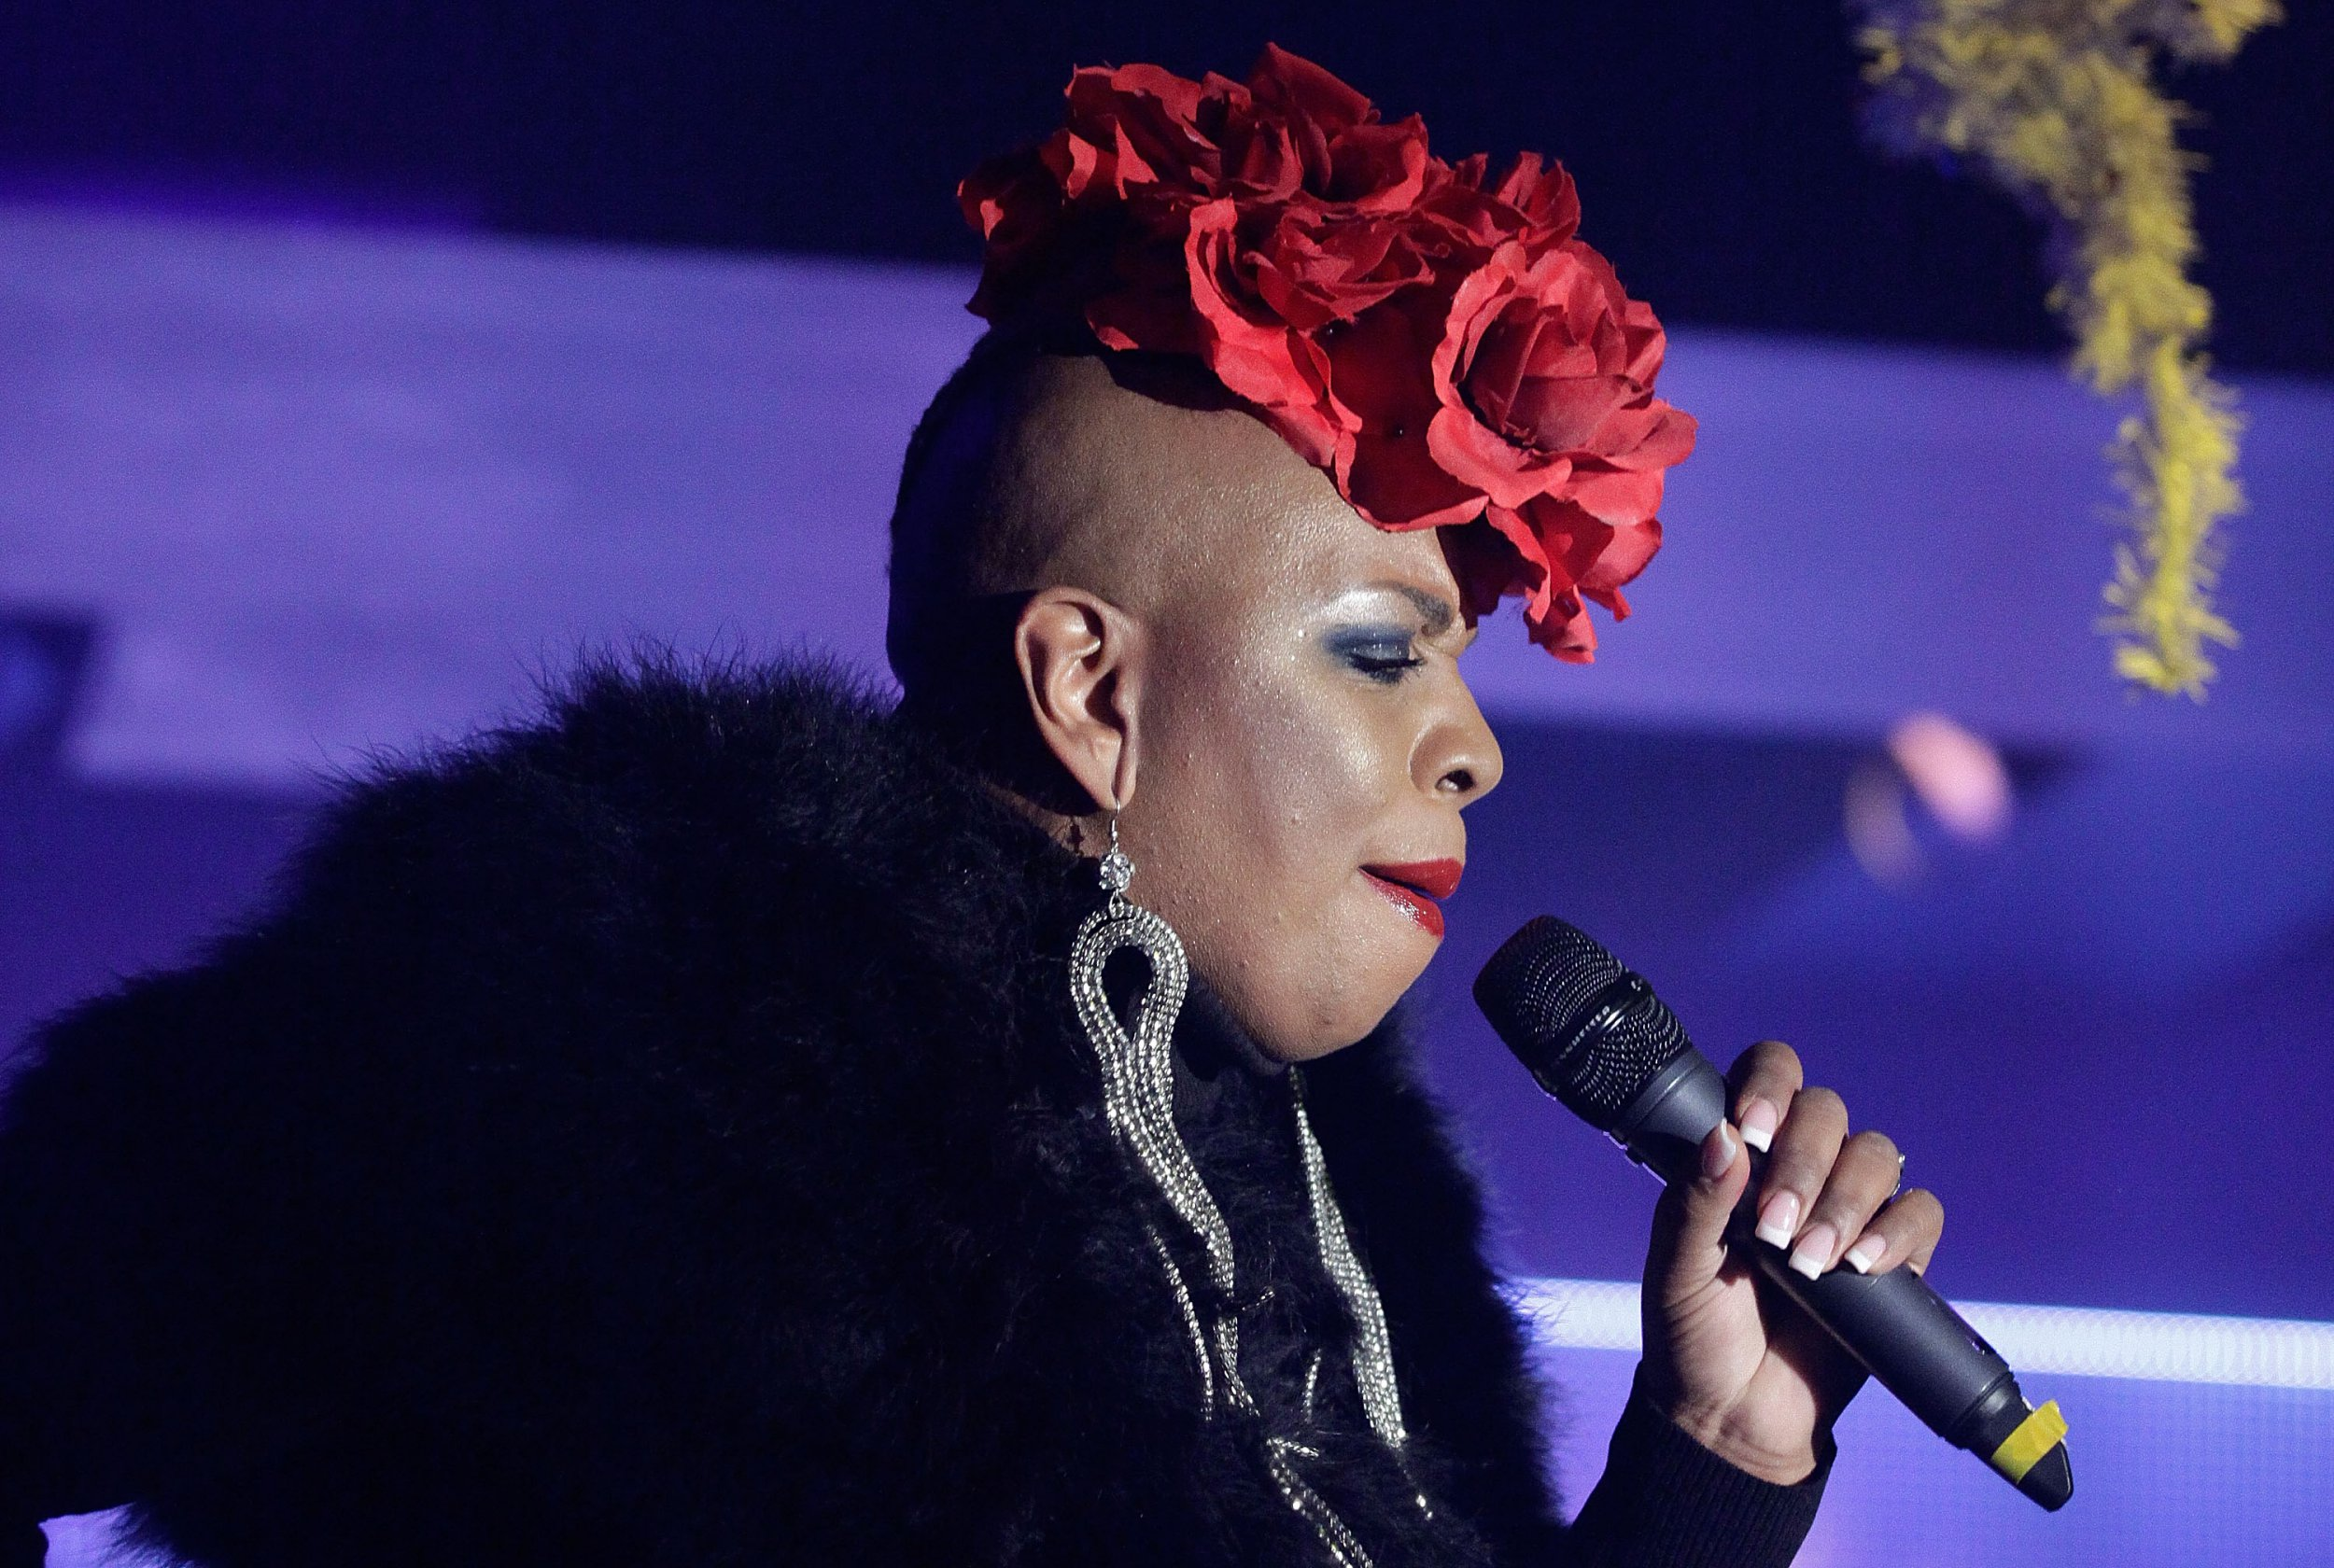 X Factor 2018: Legendary 90s chart-topper Janice Robinson auditions for Simon Cowell, Louis Tomlinson, Ayda Field and Robbie Williams